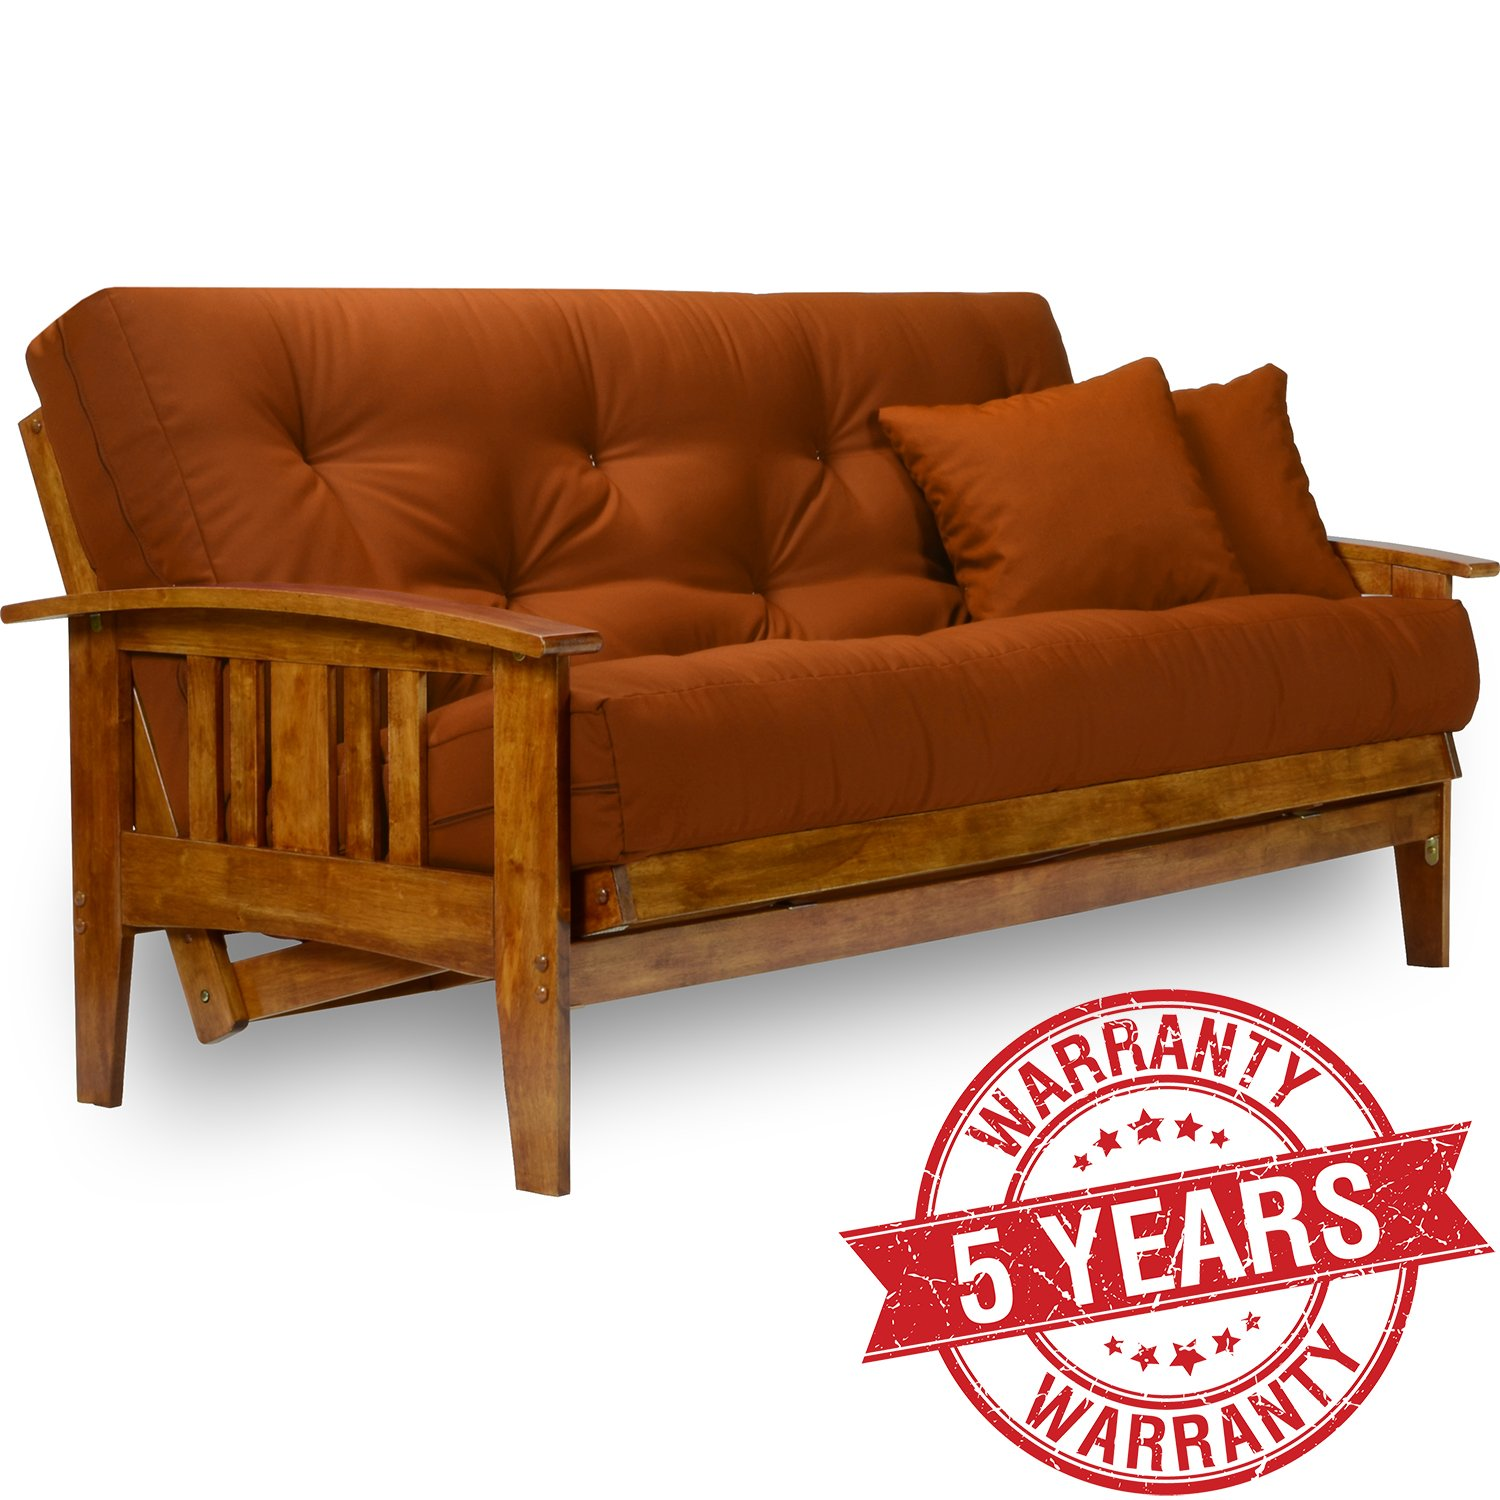 Nirvana Futons Westfield Wood Futon Frame - Full Size by Nirvana Futons